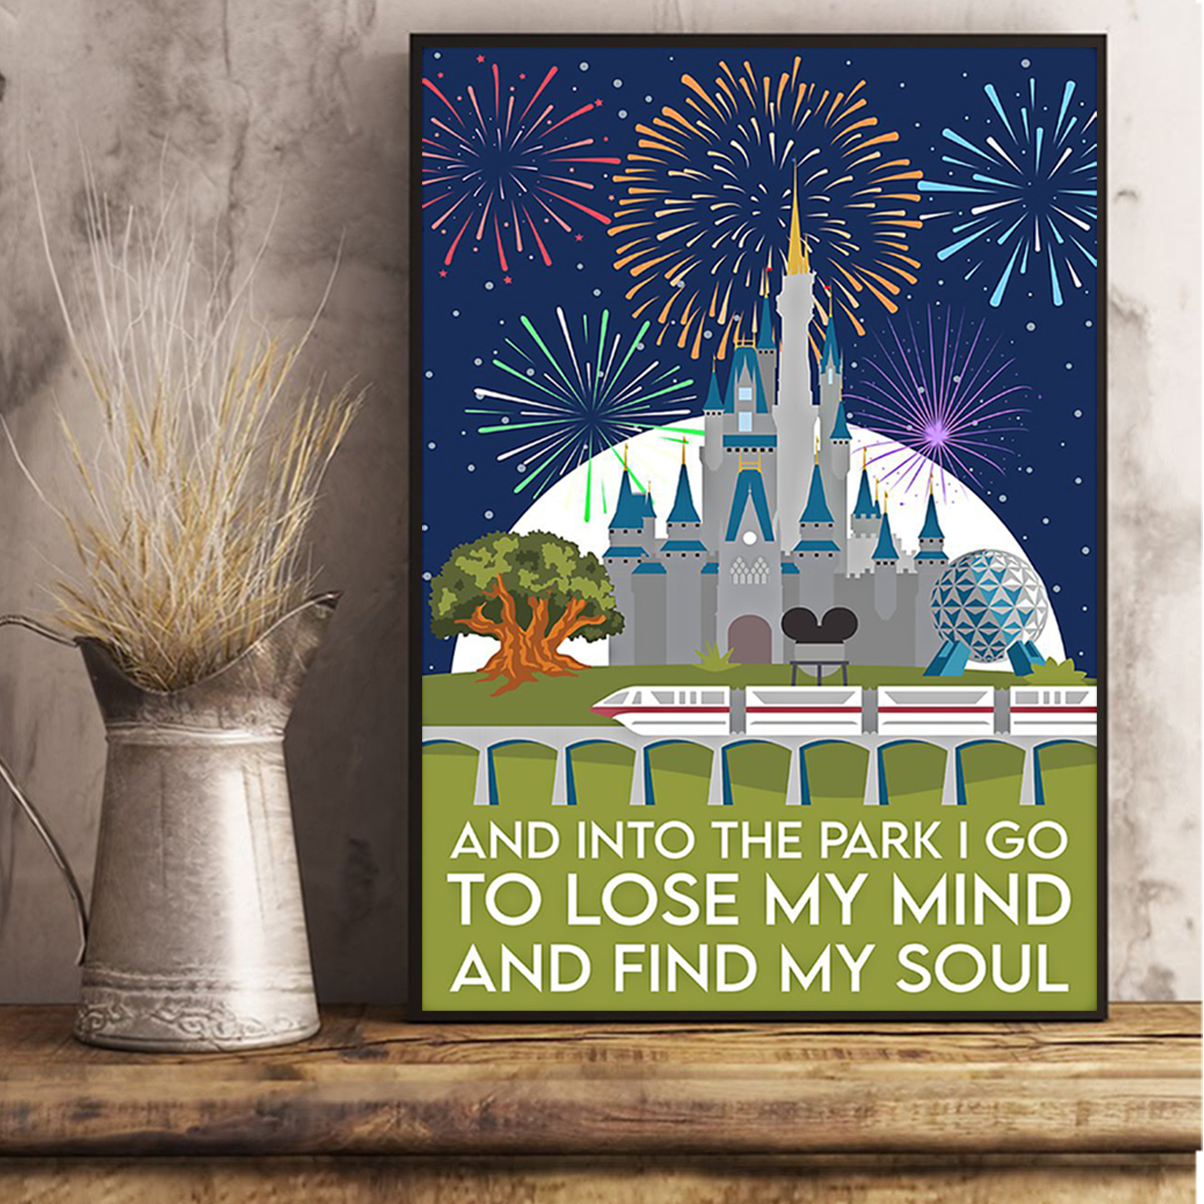 And into the park I go to lose my mind and find my soul poster A2